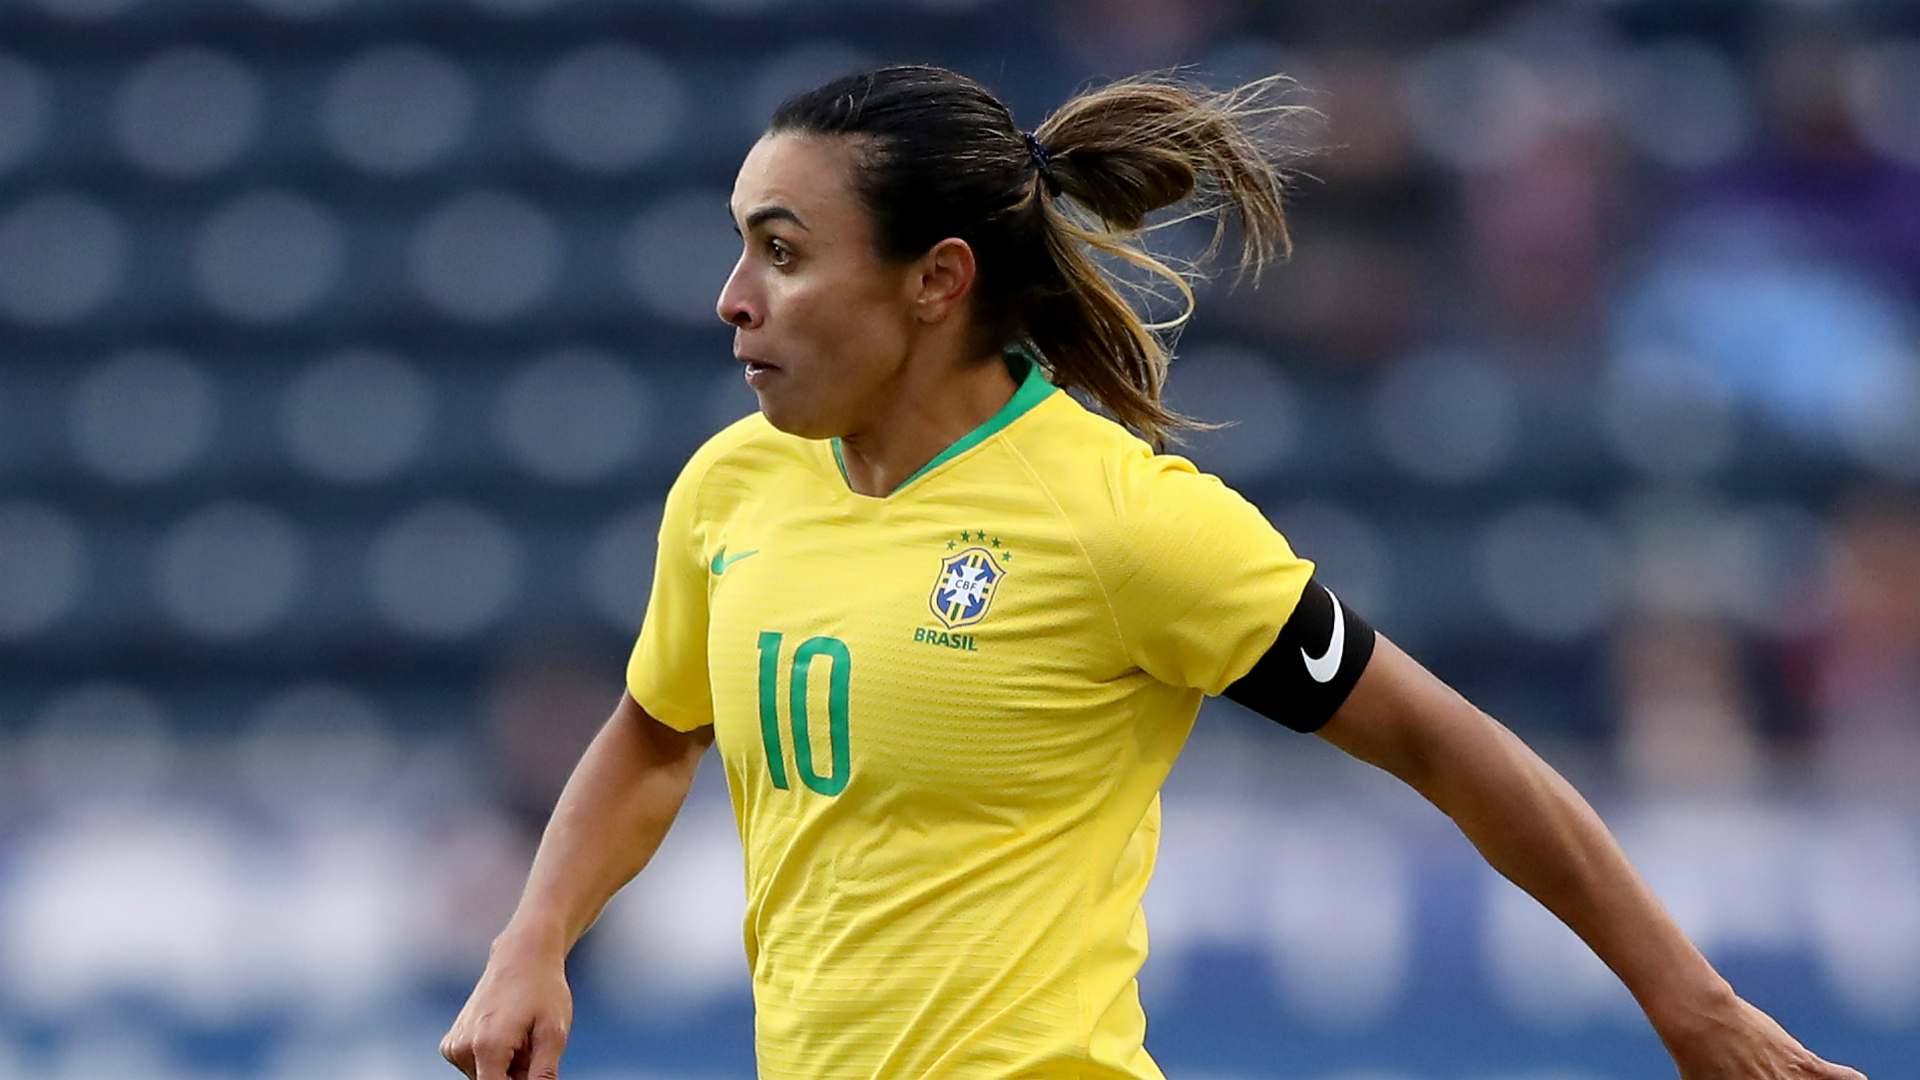 Brazil vs. Jamaica in 2019 FIFA Women's World Cup